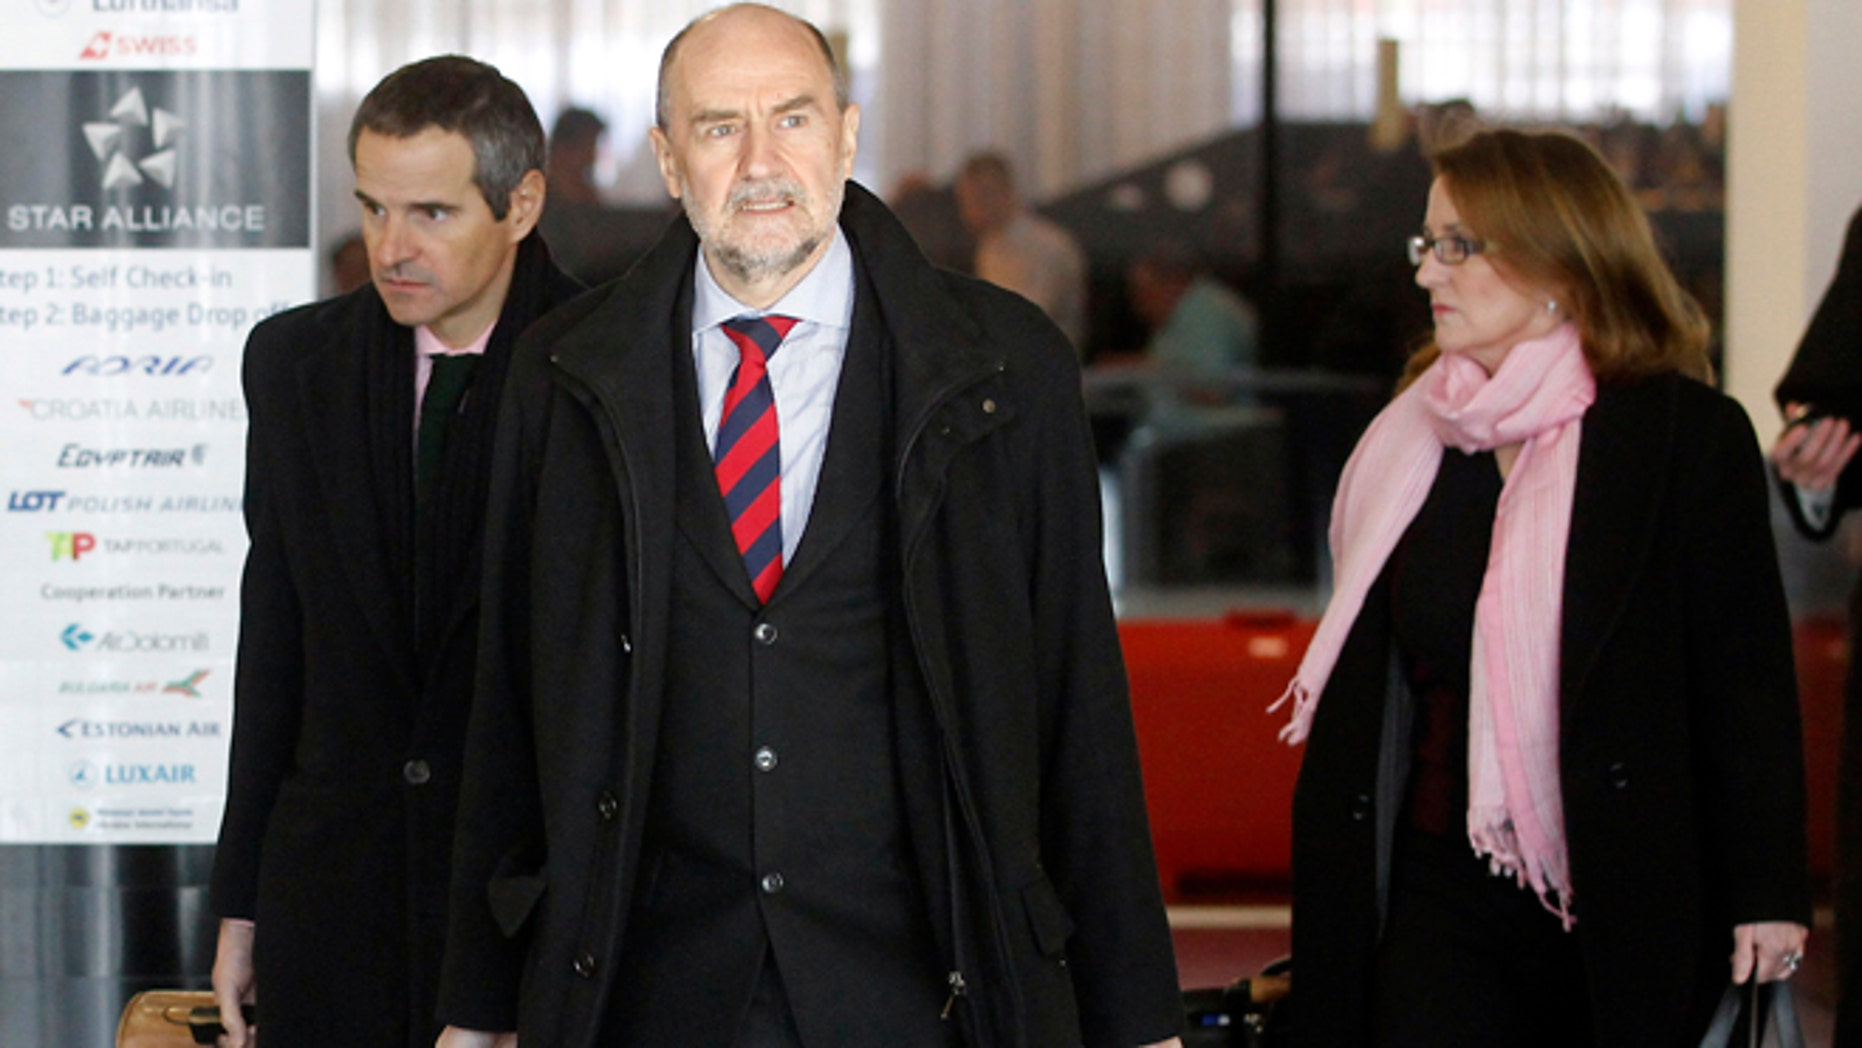 Jan. 15, 2013: Herman Nackaerts, center, of the International Atomic Energy Agency, IAEA, Deputy Director General and Head of the Department of Safeguards, arrives for his flight to Iran at Vienna's Schwechat airport, Austria.